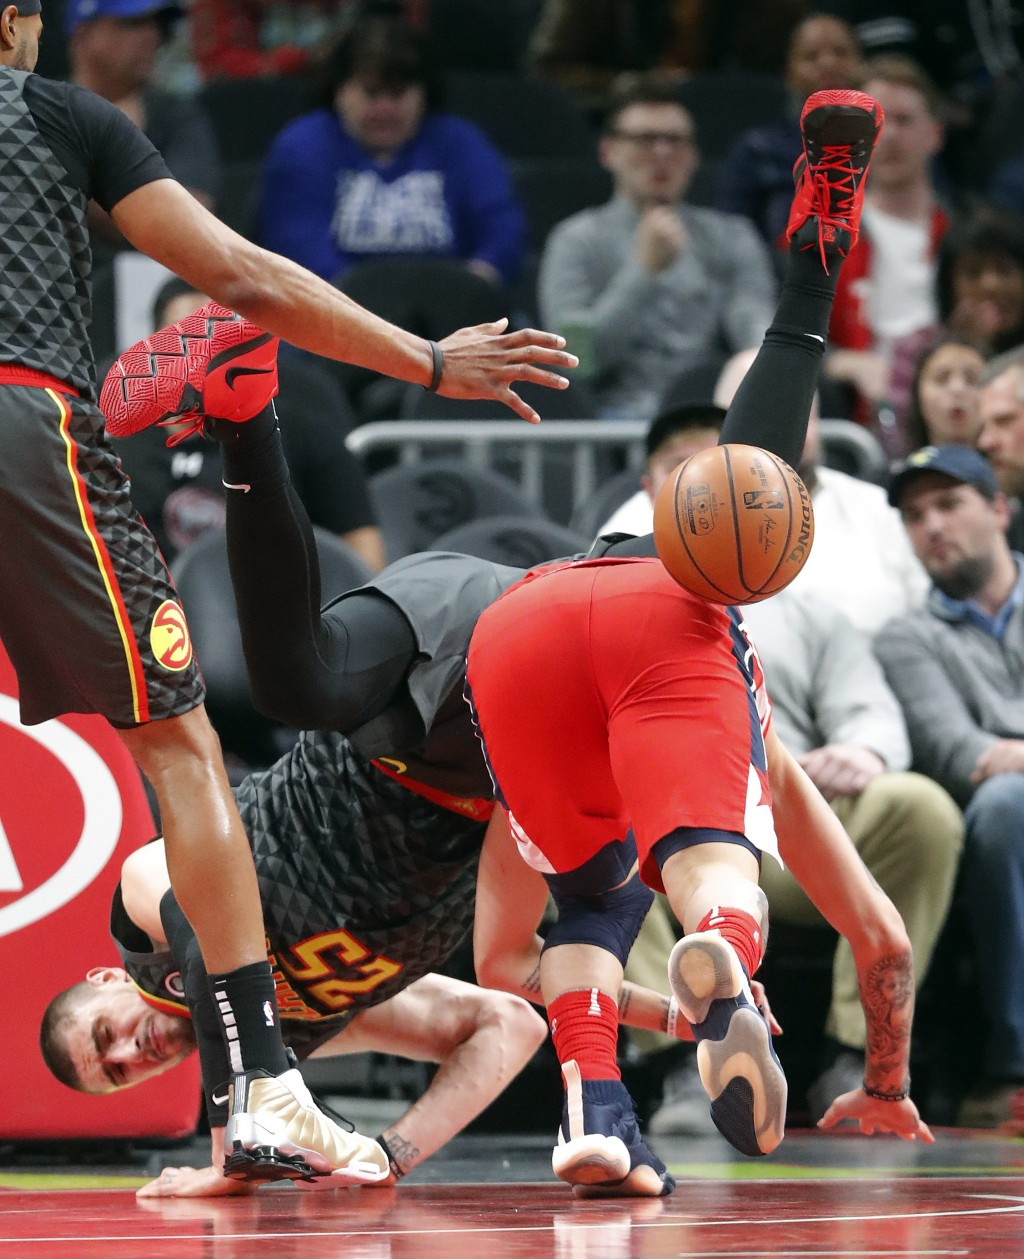 Atlanta Hawks center Alex Len (25) falls over Washington Wizards guard Austin Rivers (1) during the first half of an NBA basketball game Wednesday, De